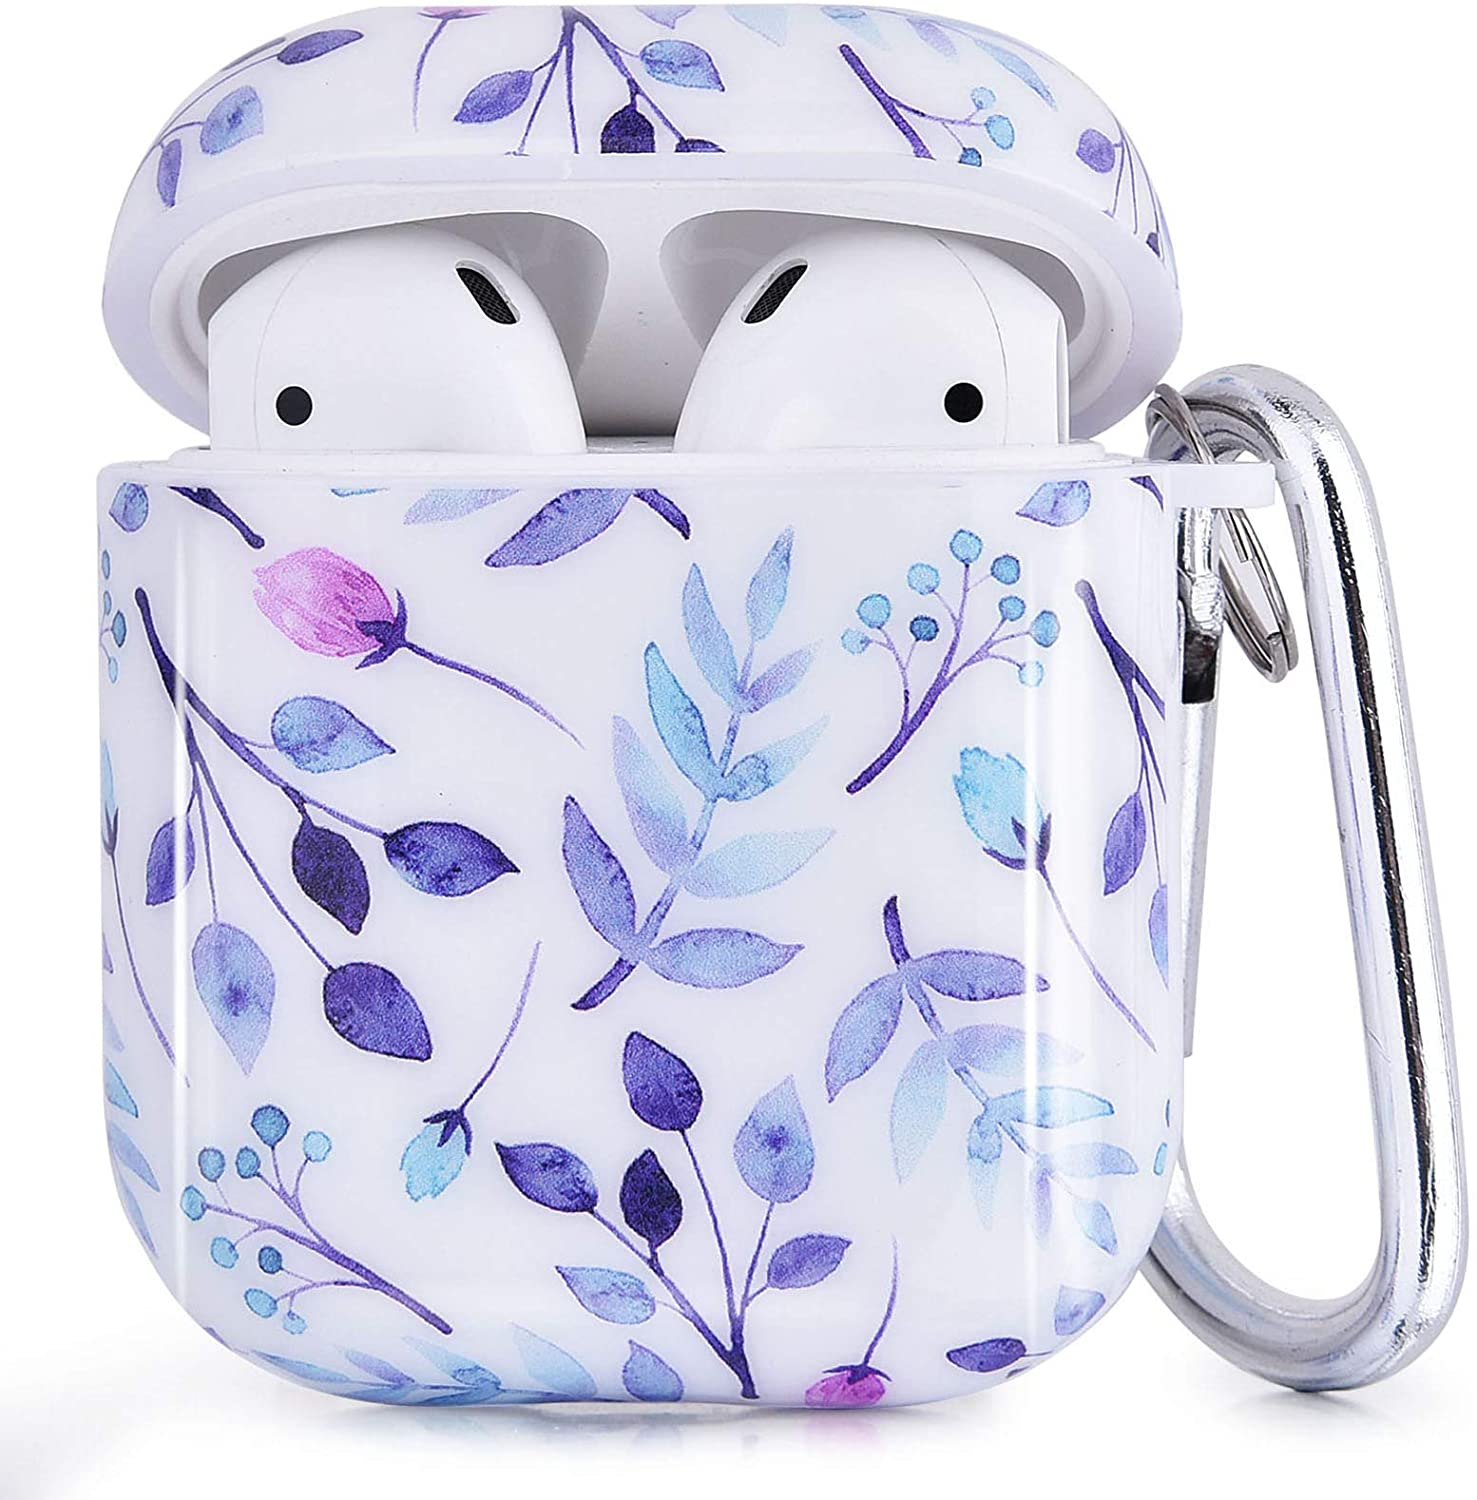 CAGOS Compatible with Airpods Case, 3 in 1 TPU Hard Airpods Accessories Protective Case Cover Portable & Shockproof for Apple Airpods 2 & 1 Charging Case (Purple Bamboo)